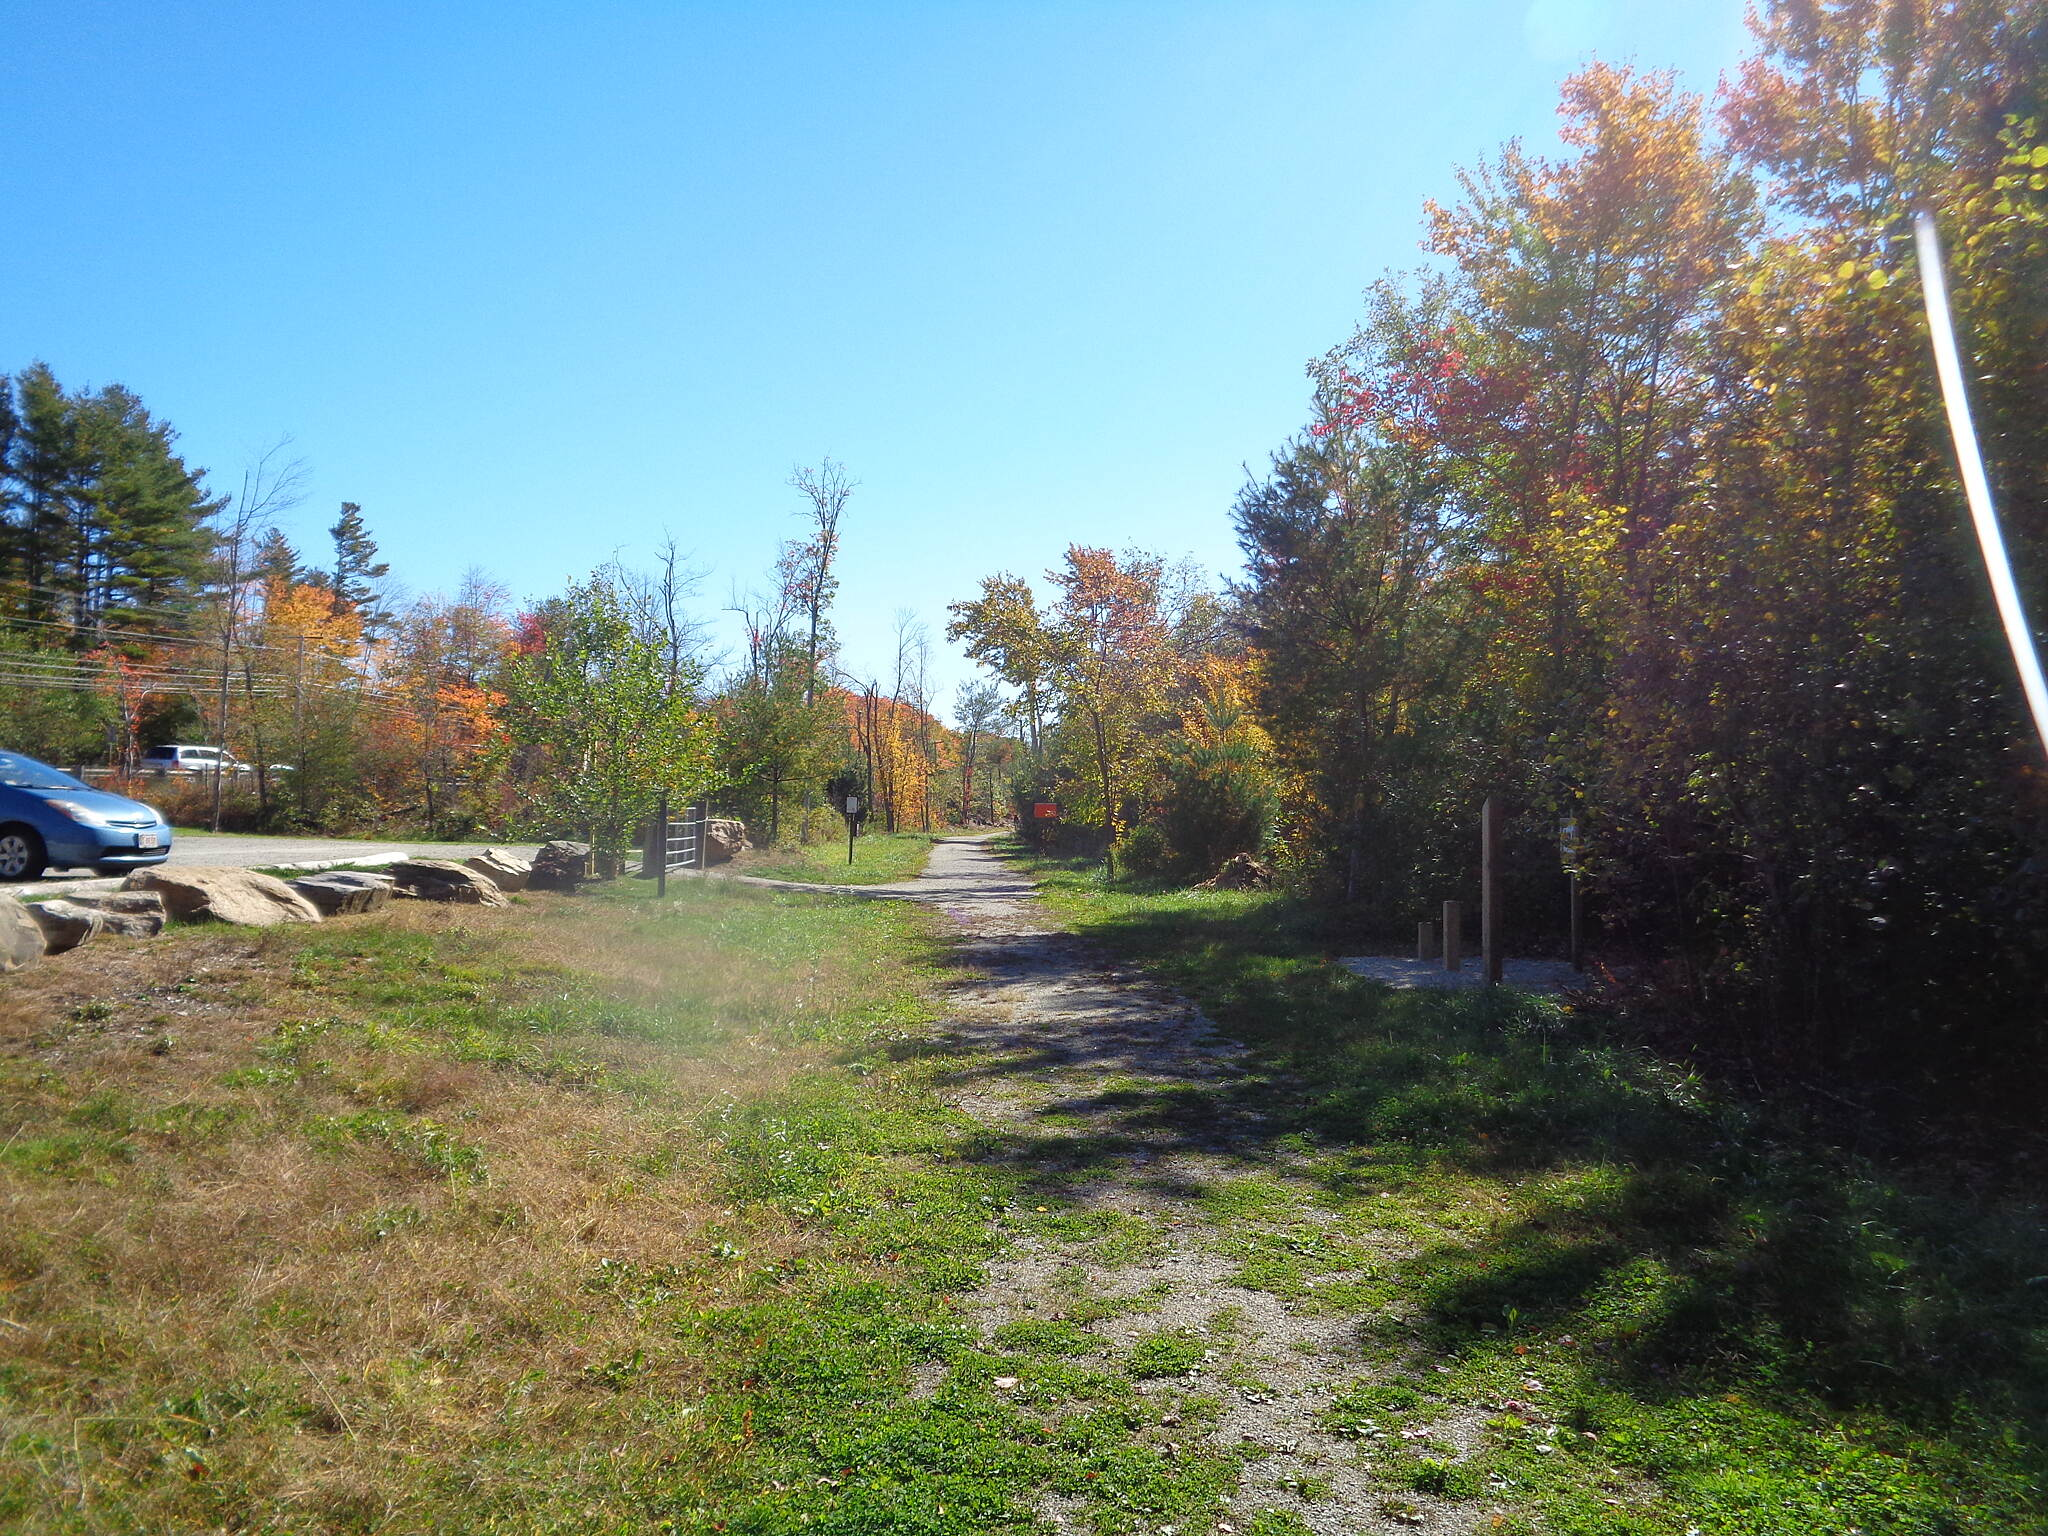 Grand Trunk Trail Current west end This is at the Route US 20 parking area looking east along the Trolley Trail in East Brimfield on 10/10/16